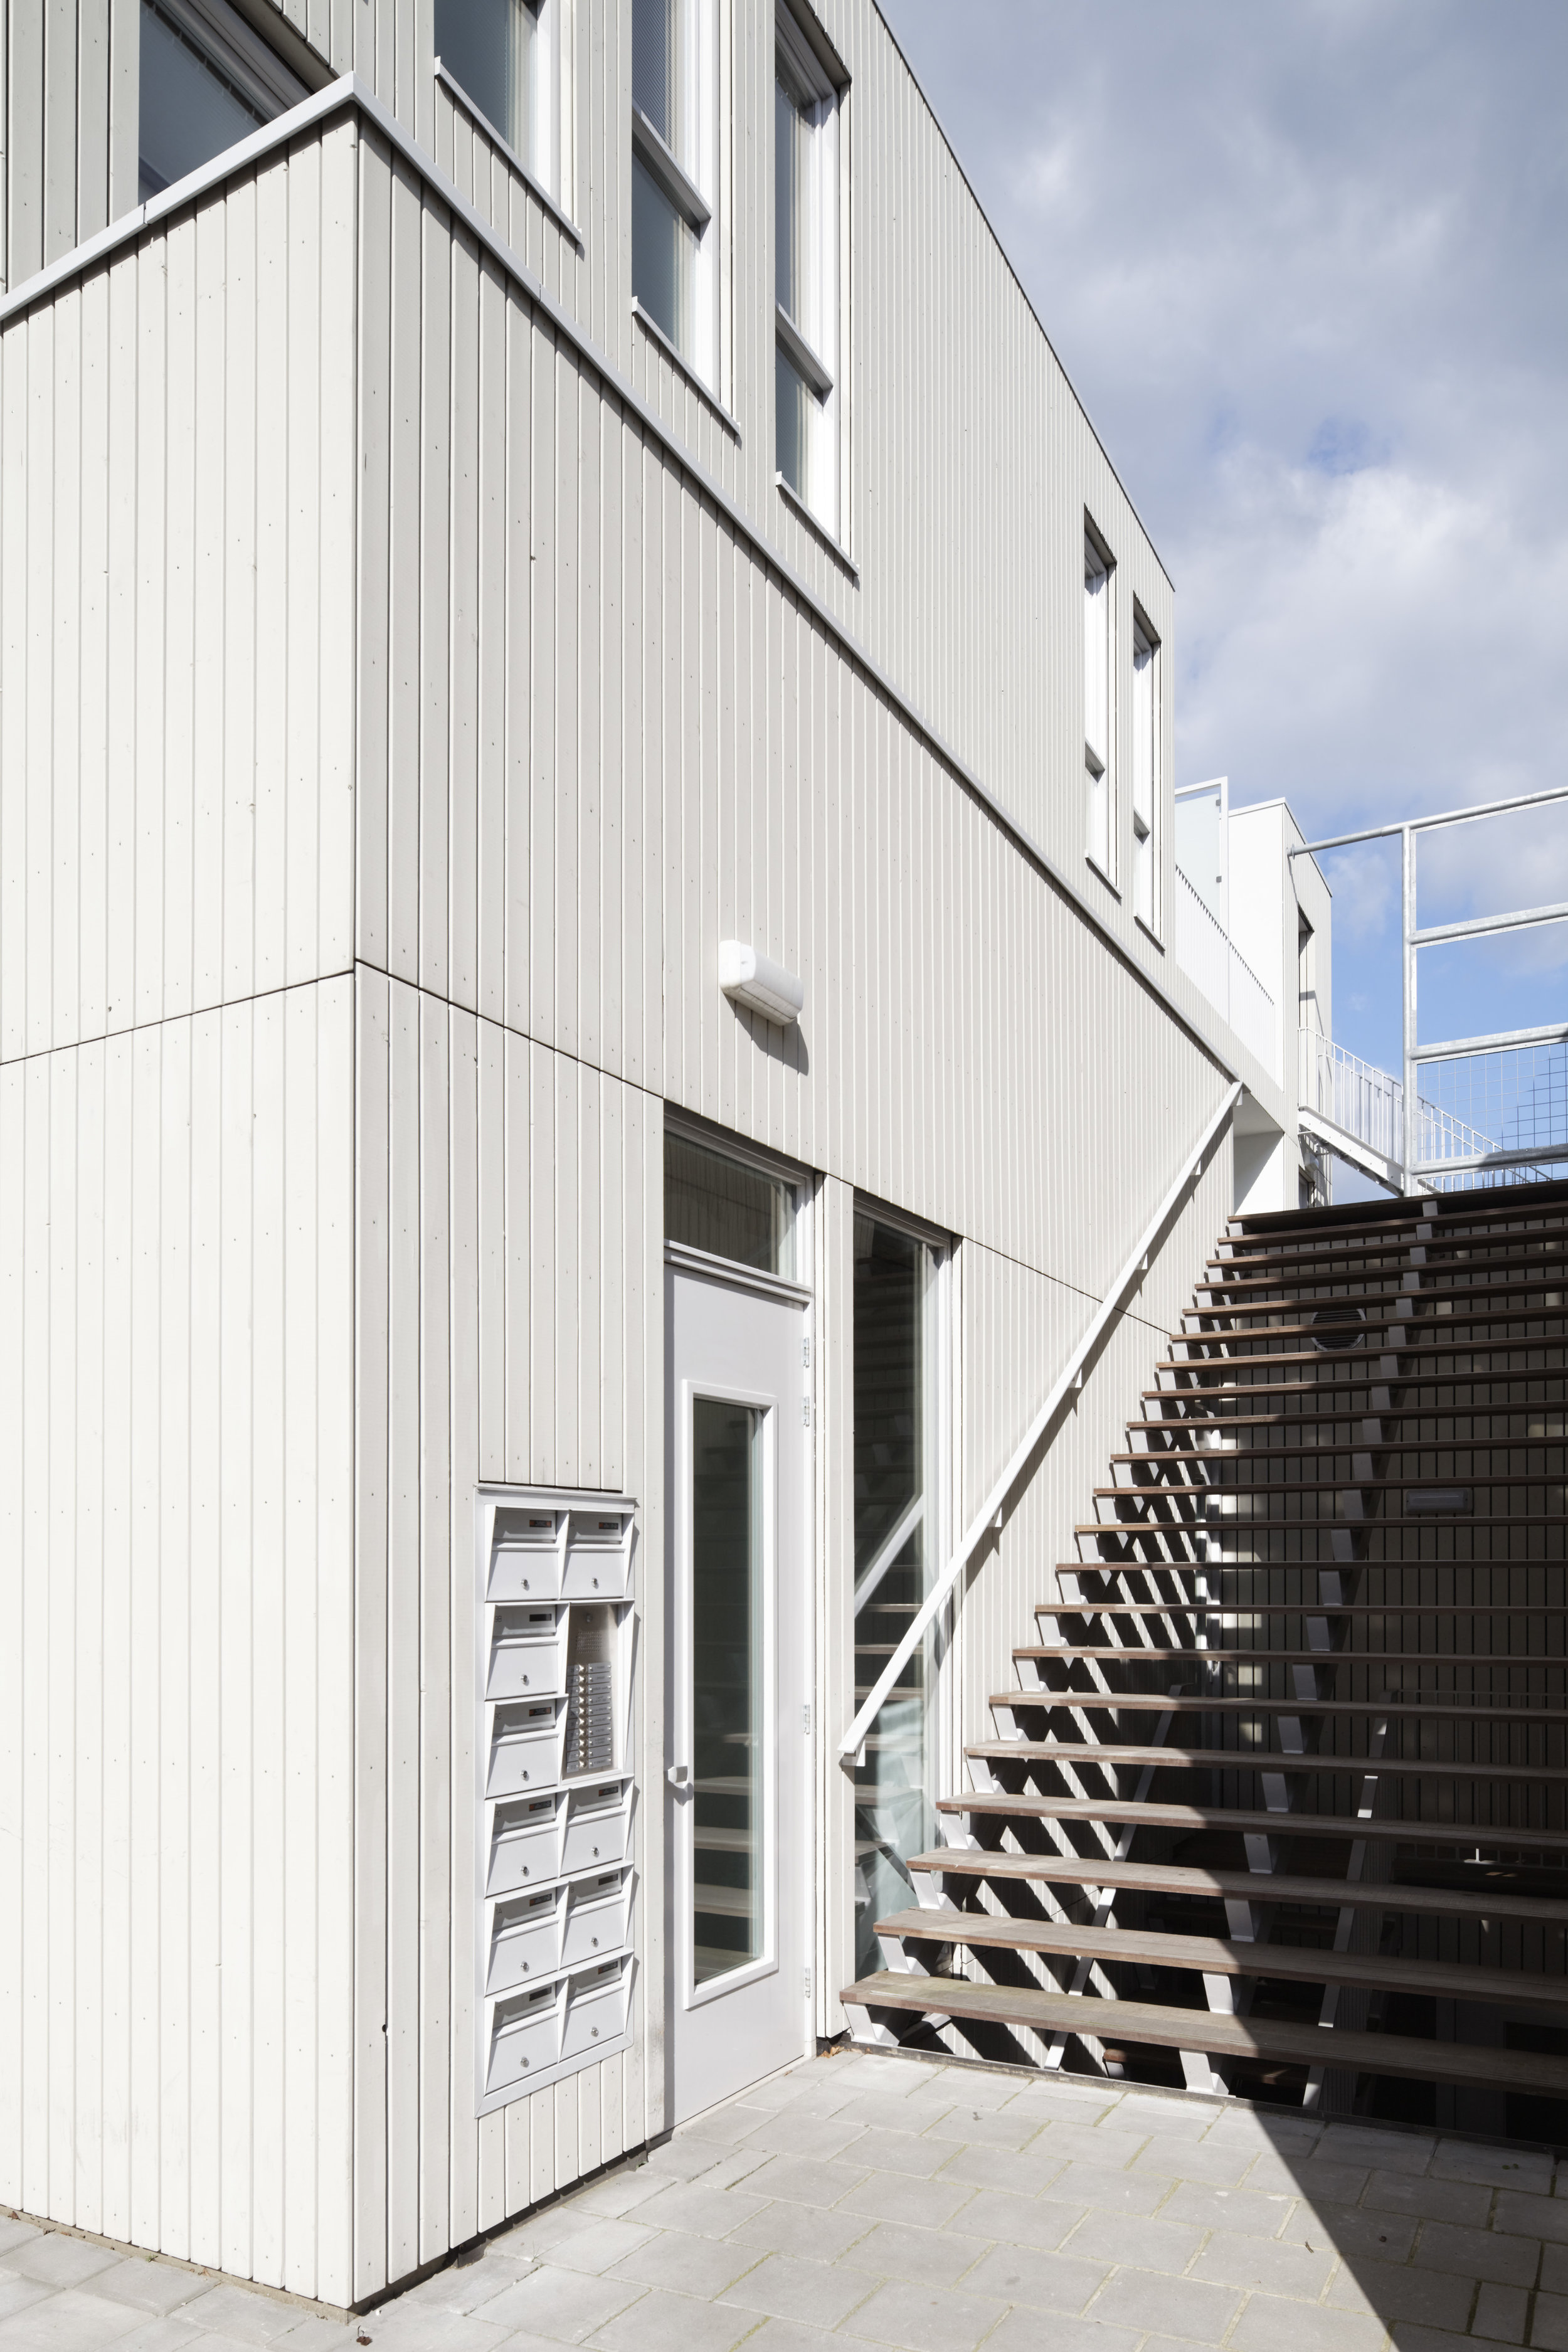 detail of area with communal stairs and acces to parking garage